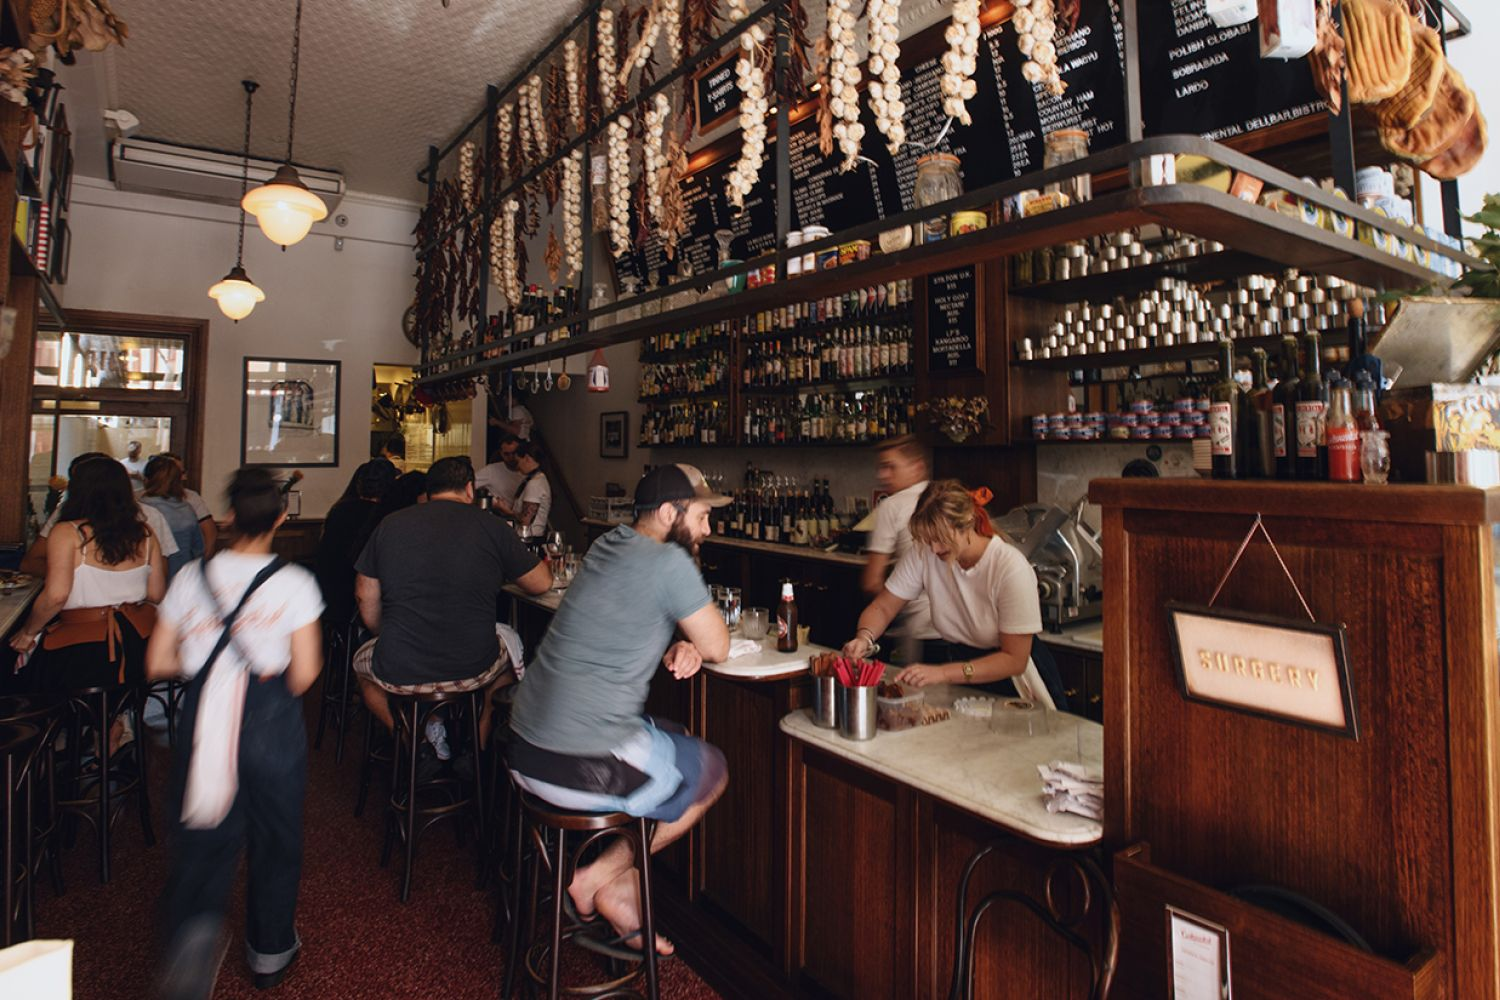 People enjoying food and drink at Continental Deli Bar Bistro in Newtown, Inner Sydney